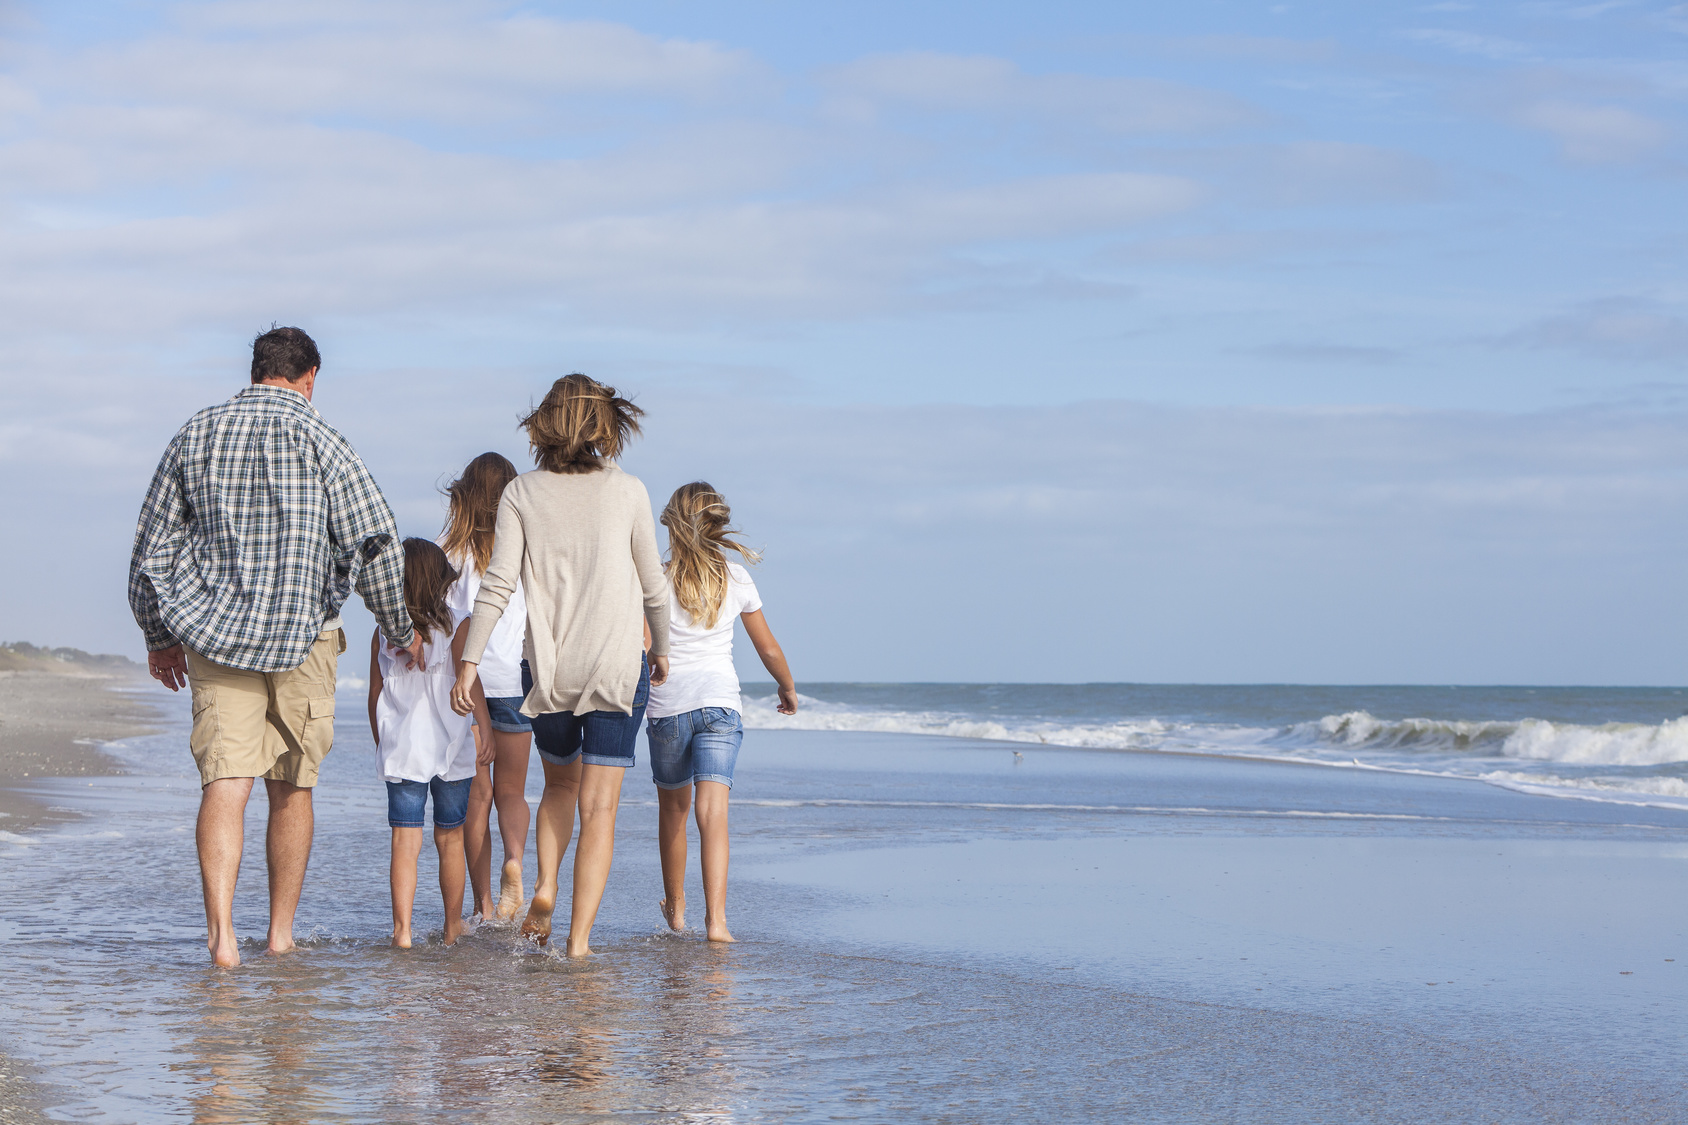 A family strolling on the beach contemplating a 1035 exchange life insurance review.